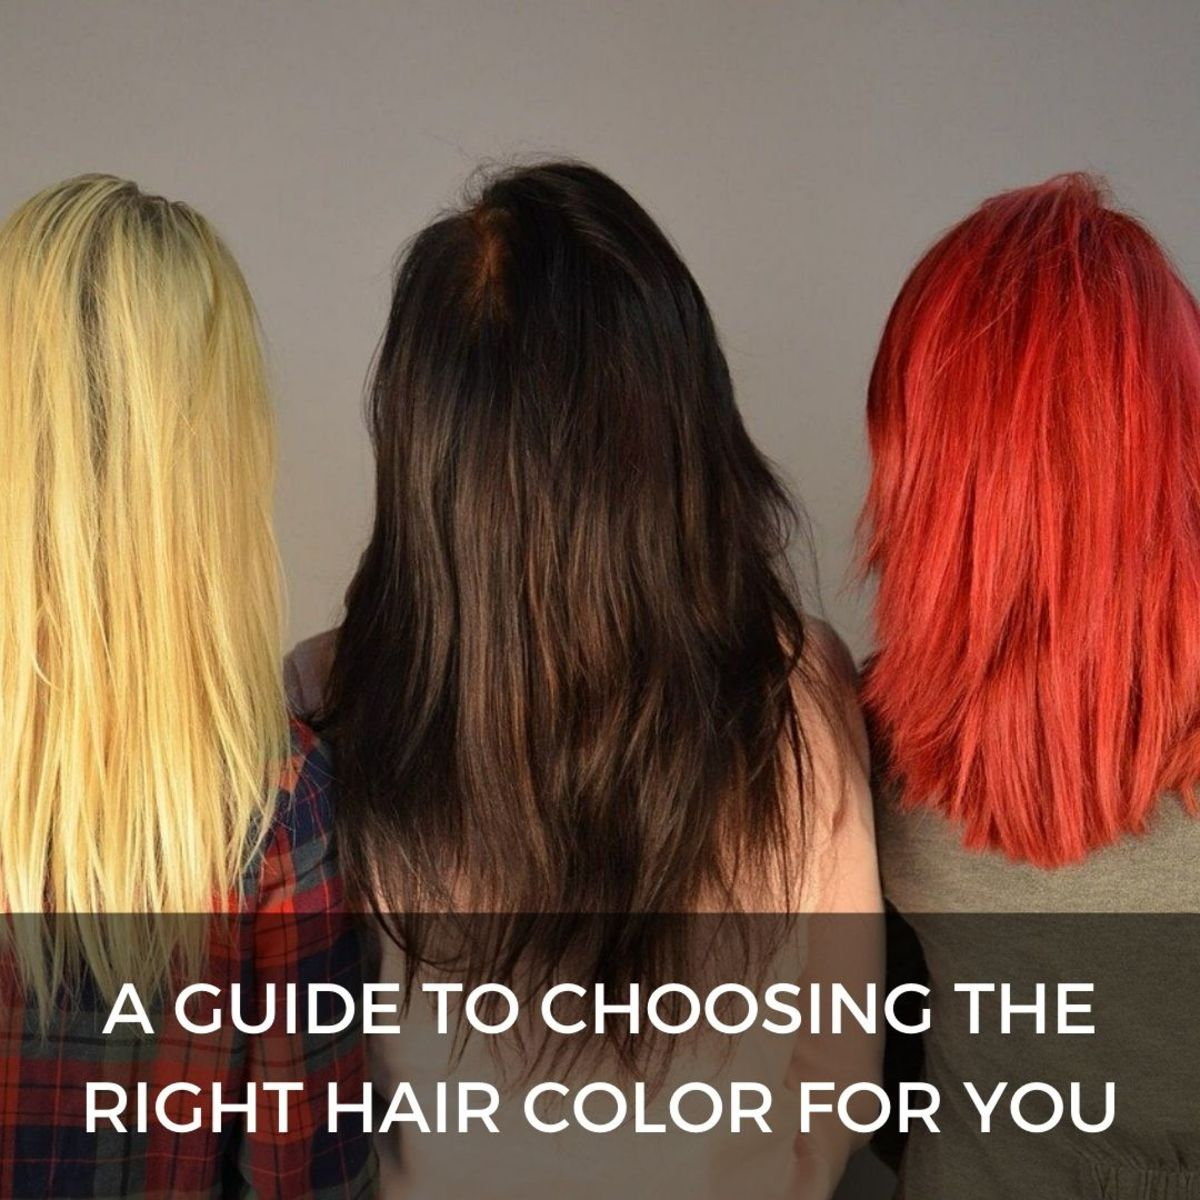 Here's how to pick the perfect hair color. Learn how to choose a color that matches your skin tone and highlights your face.